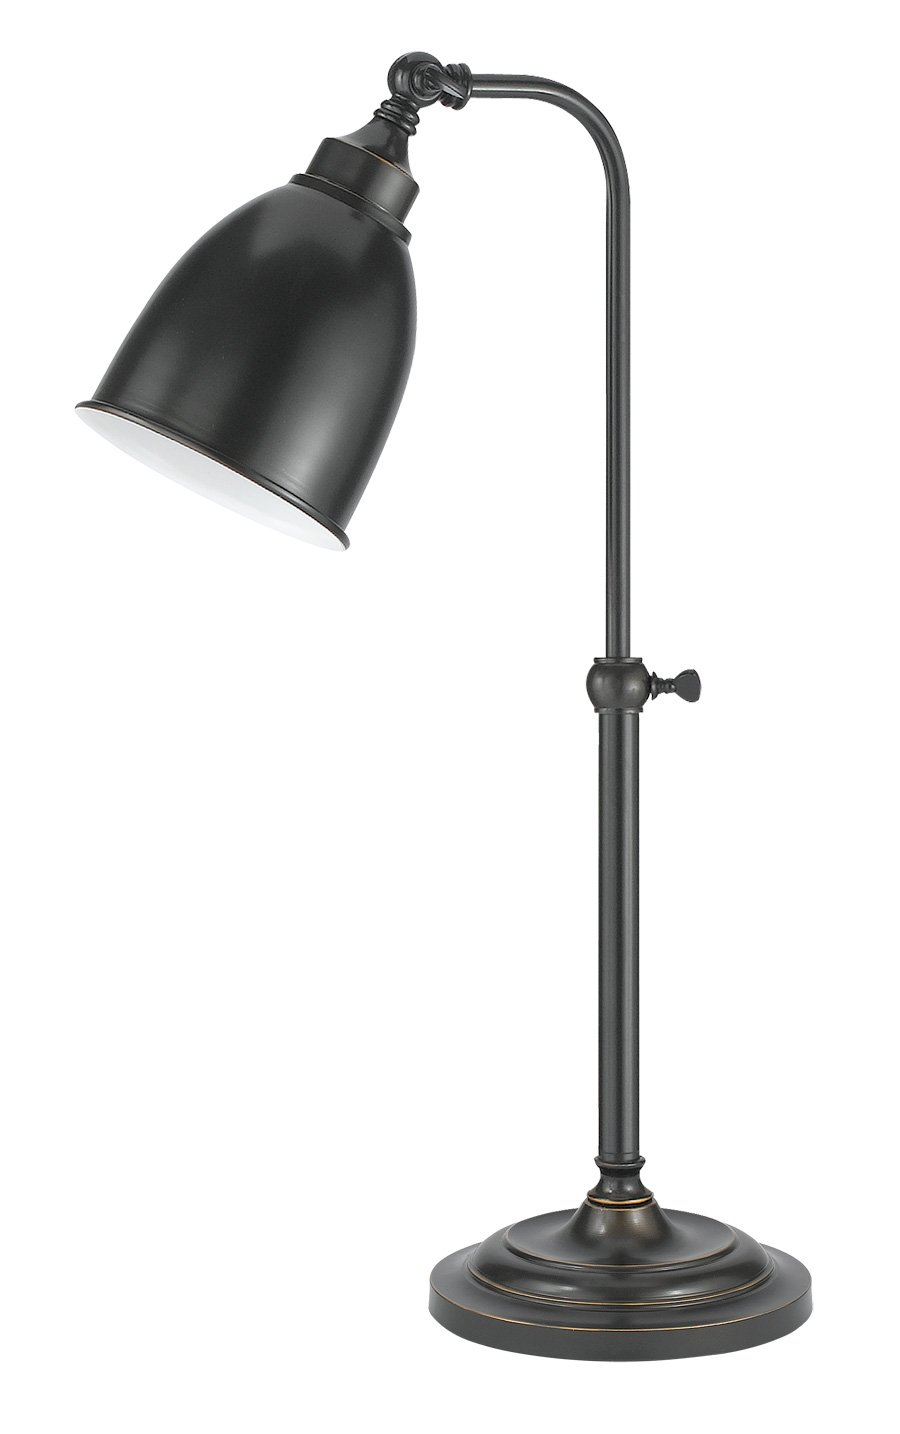 Cal Lighting BO-2032TB-DB Table Lamp with Metal Shades, Dark Bronze Finish by Cal